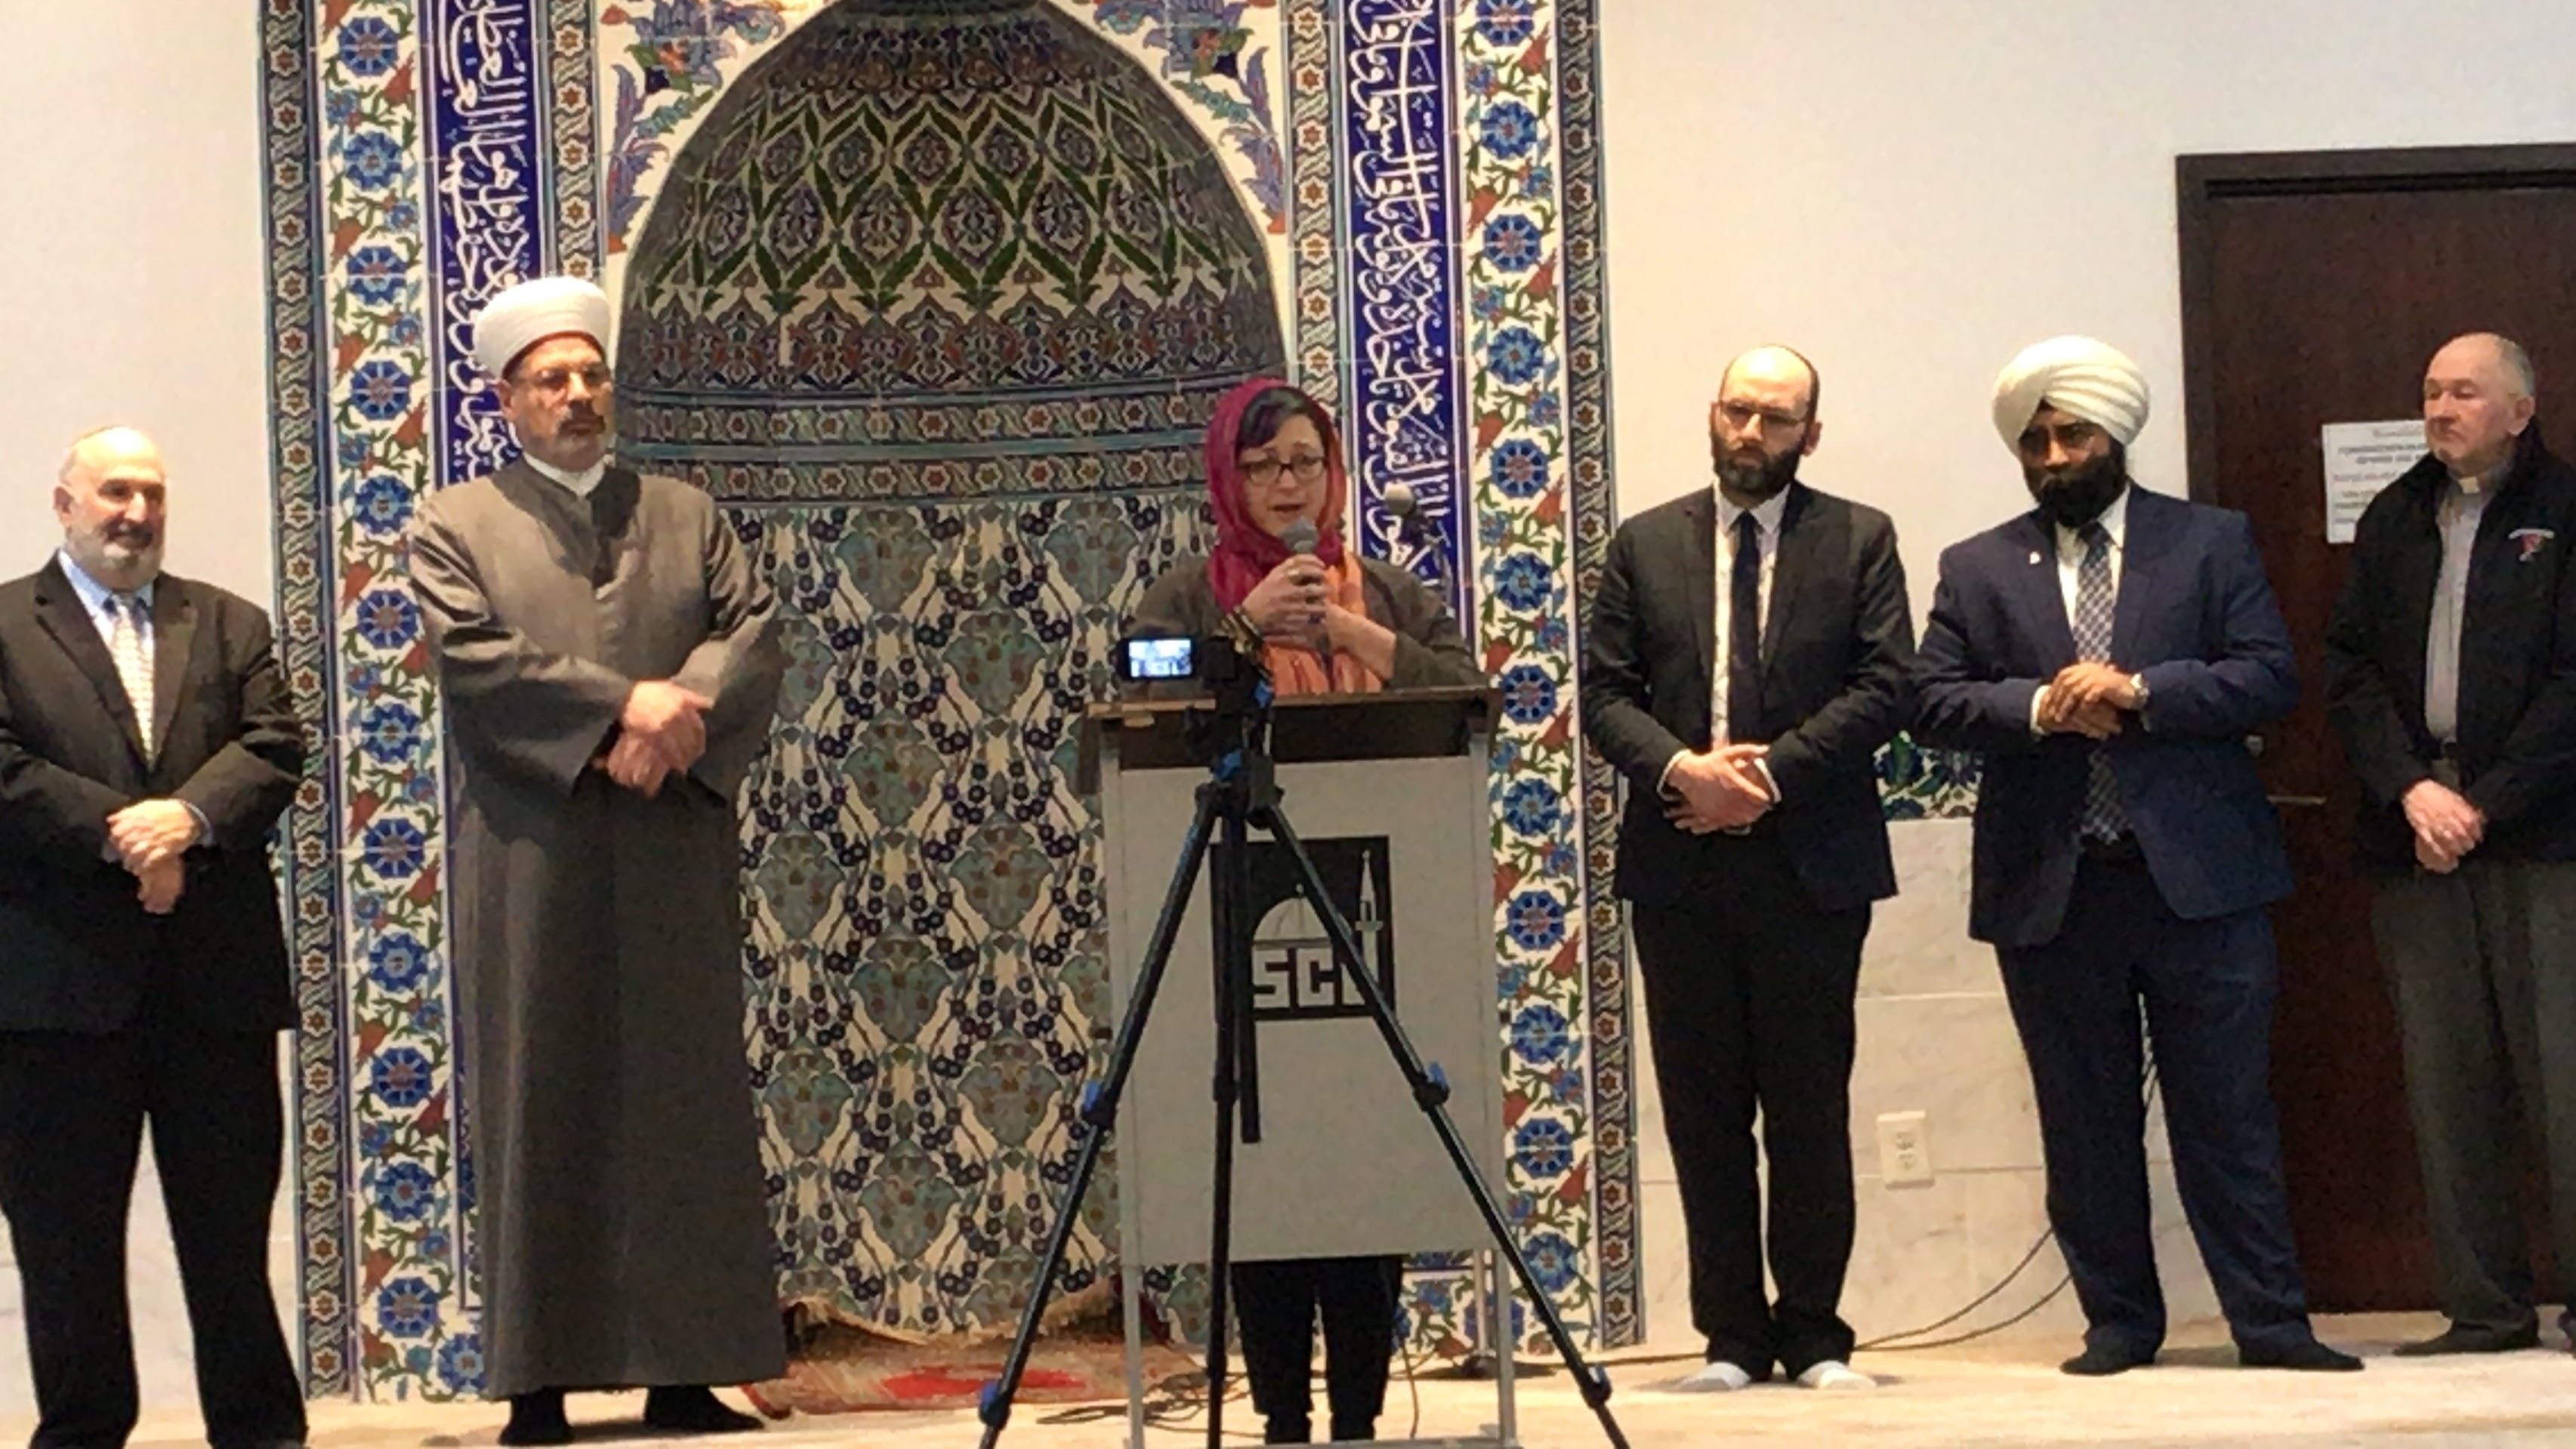 New Zealand Shooting Pinterest: New Zealand Mosque Shooting Victims Honored At New Jersey